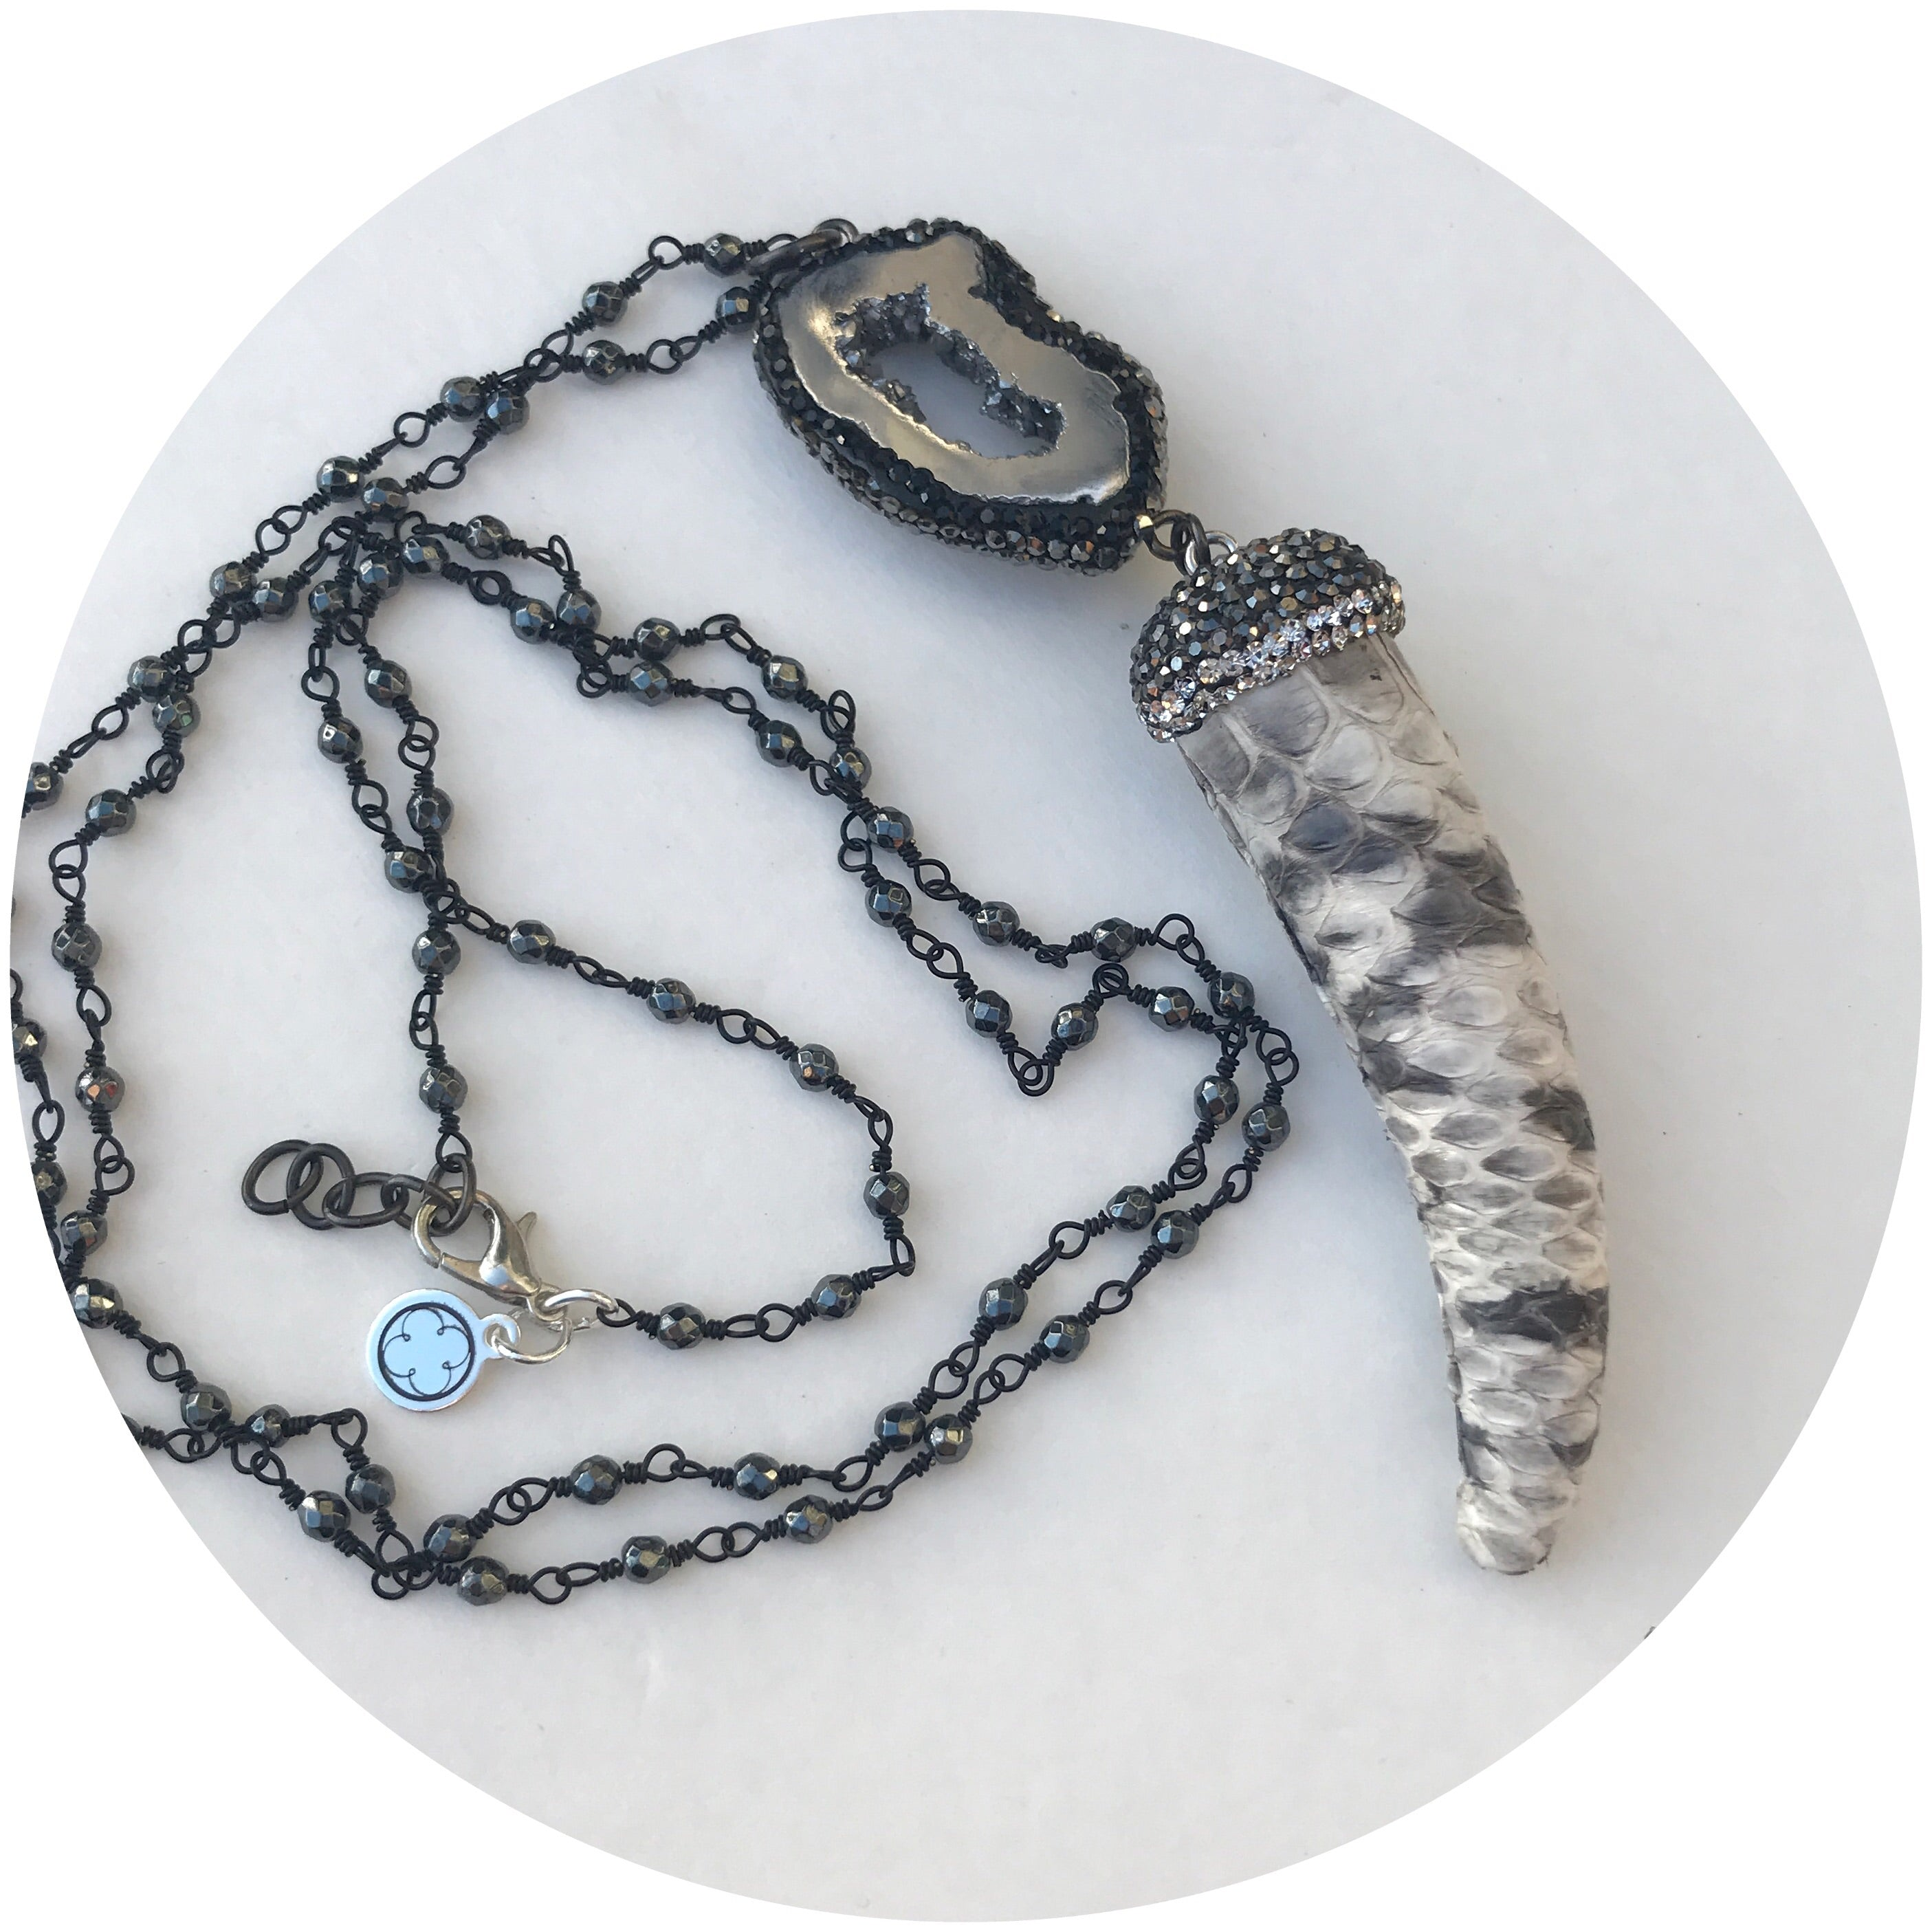 Hematite Beaded Chain with Snake Skin Horn Pendant Necklace